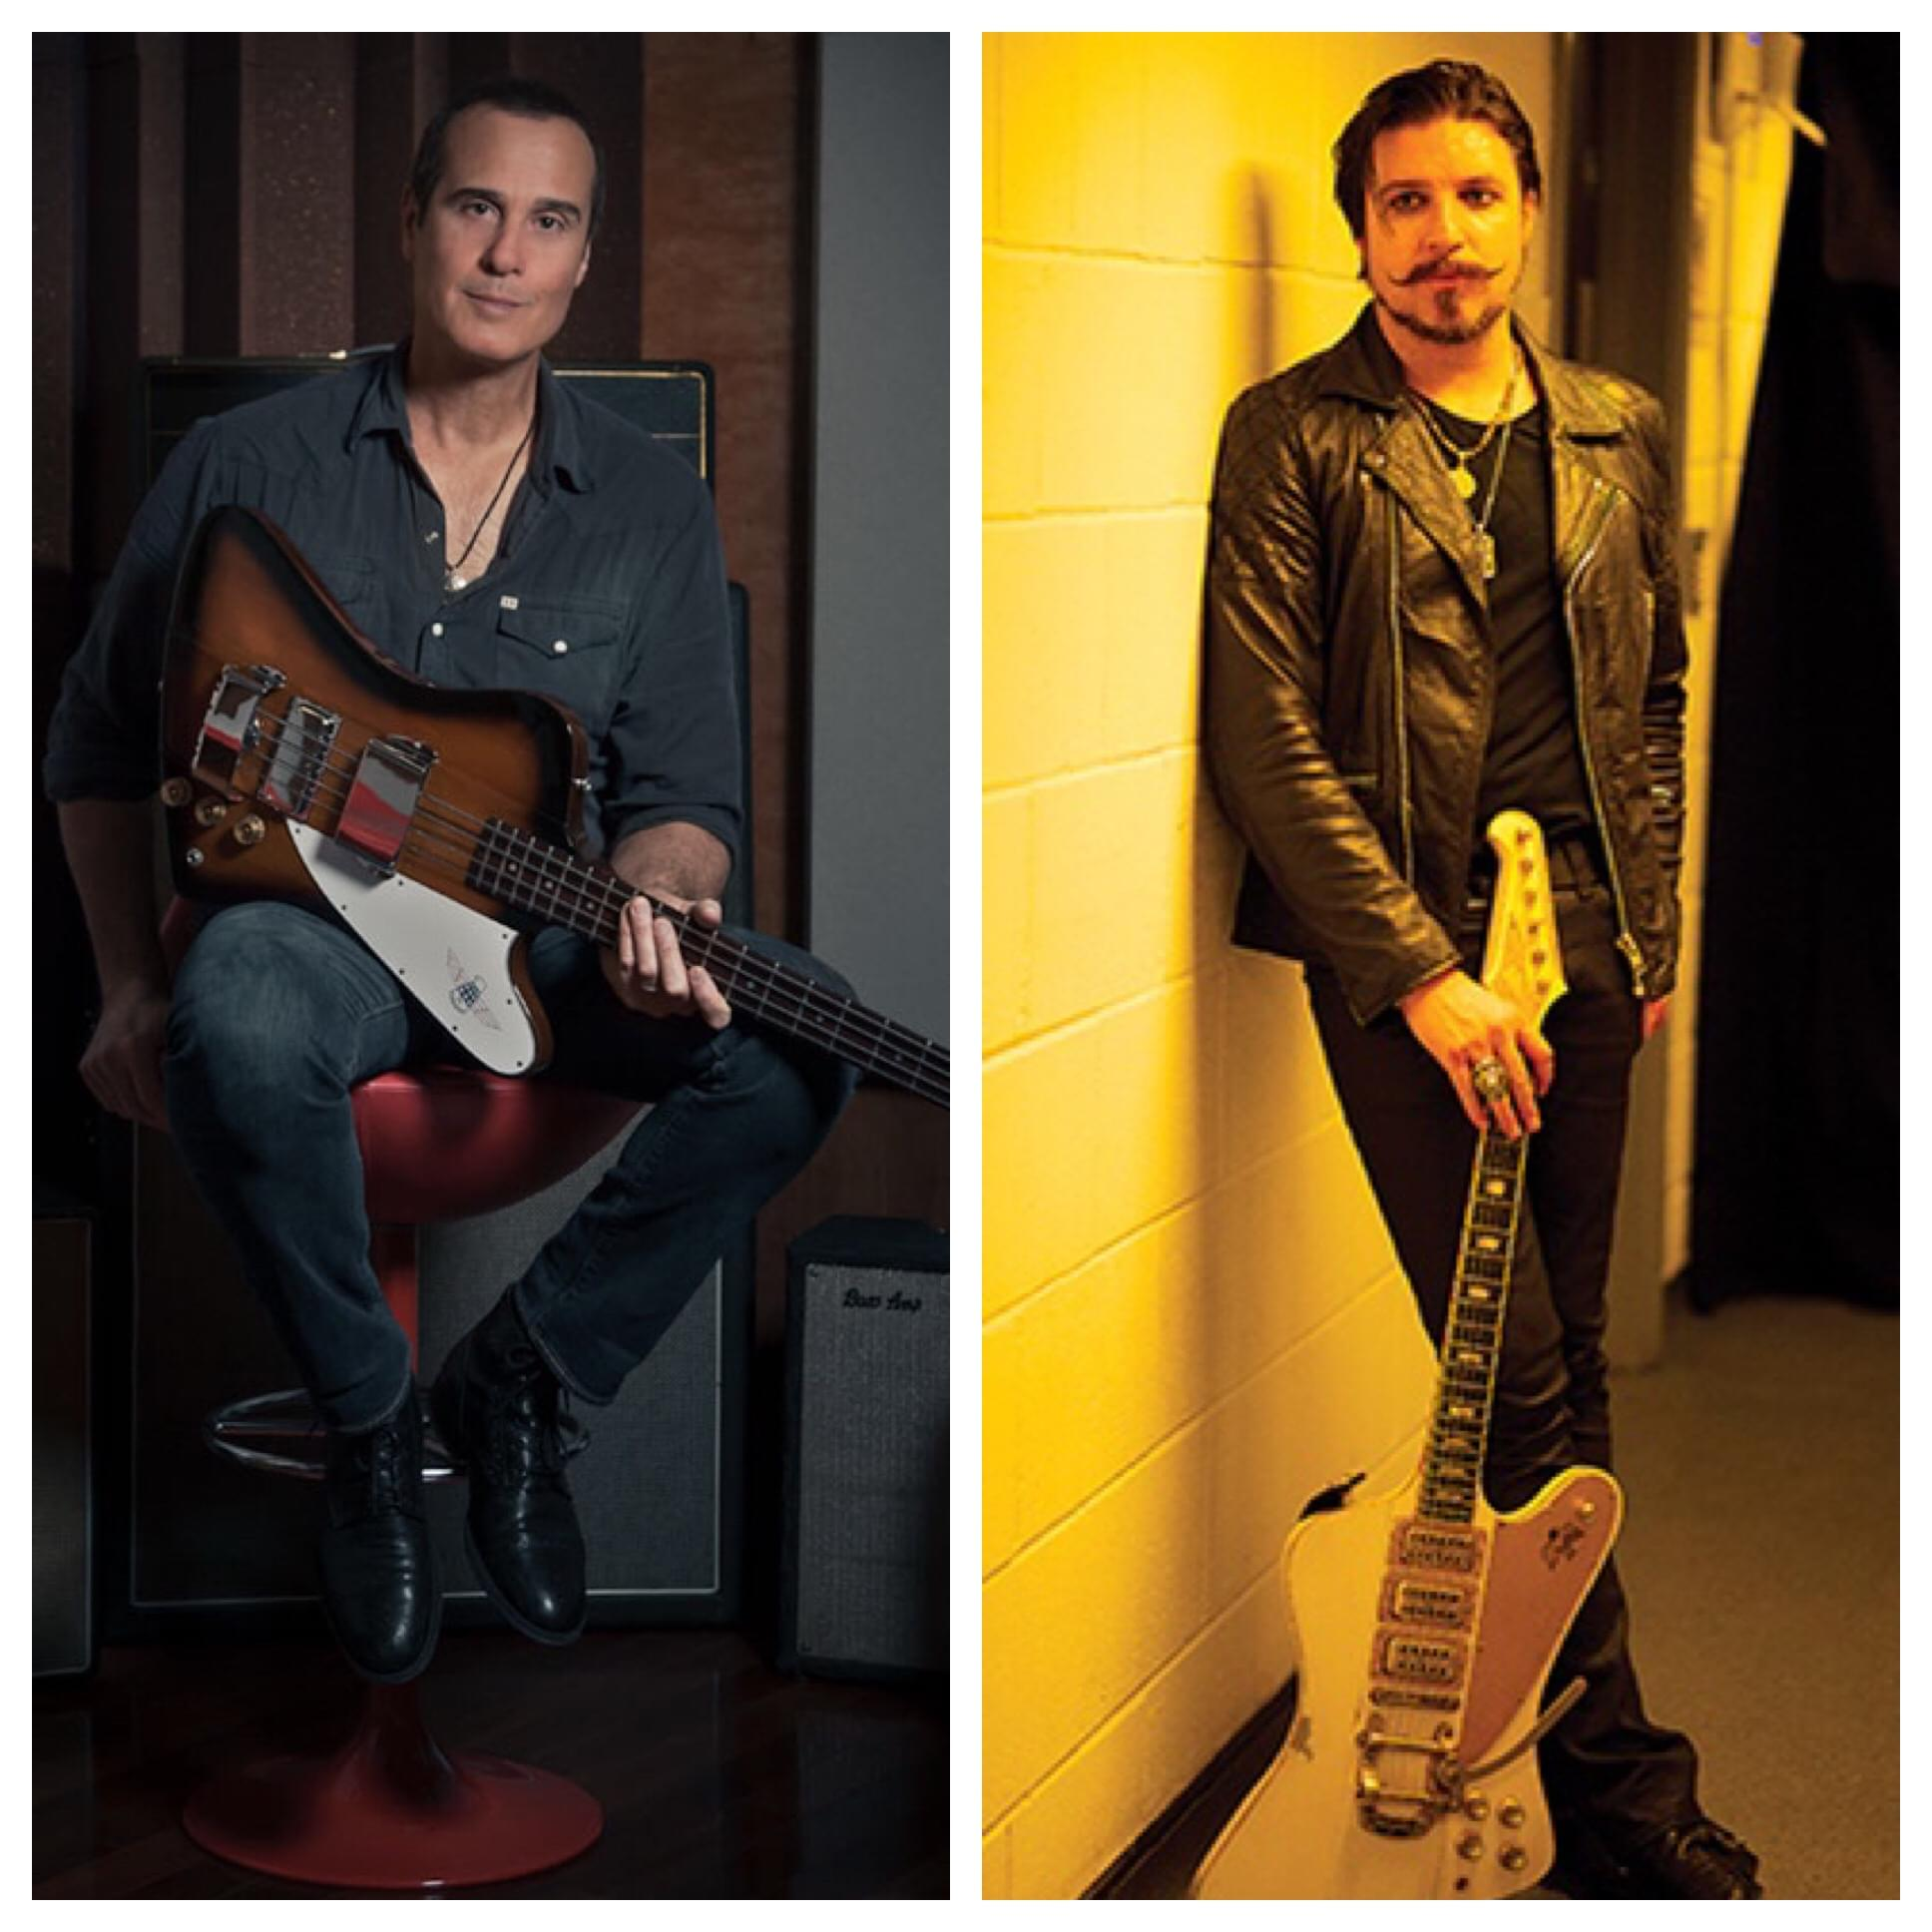 [Audio] Cameron talks to Robert DeLeo (Stone Temple Pilots) & Scott Holiday (Rival Sons)